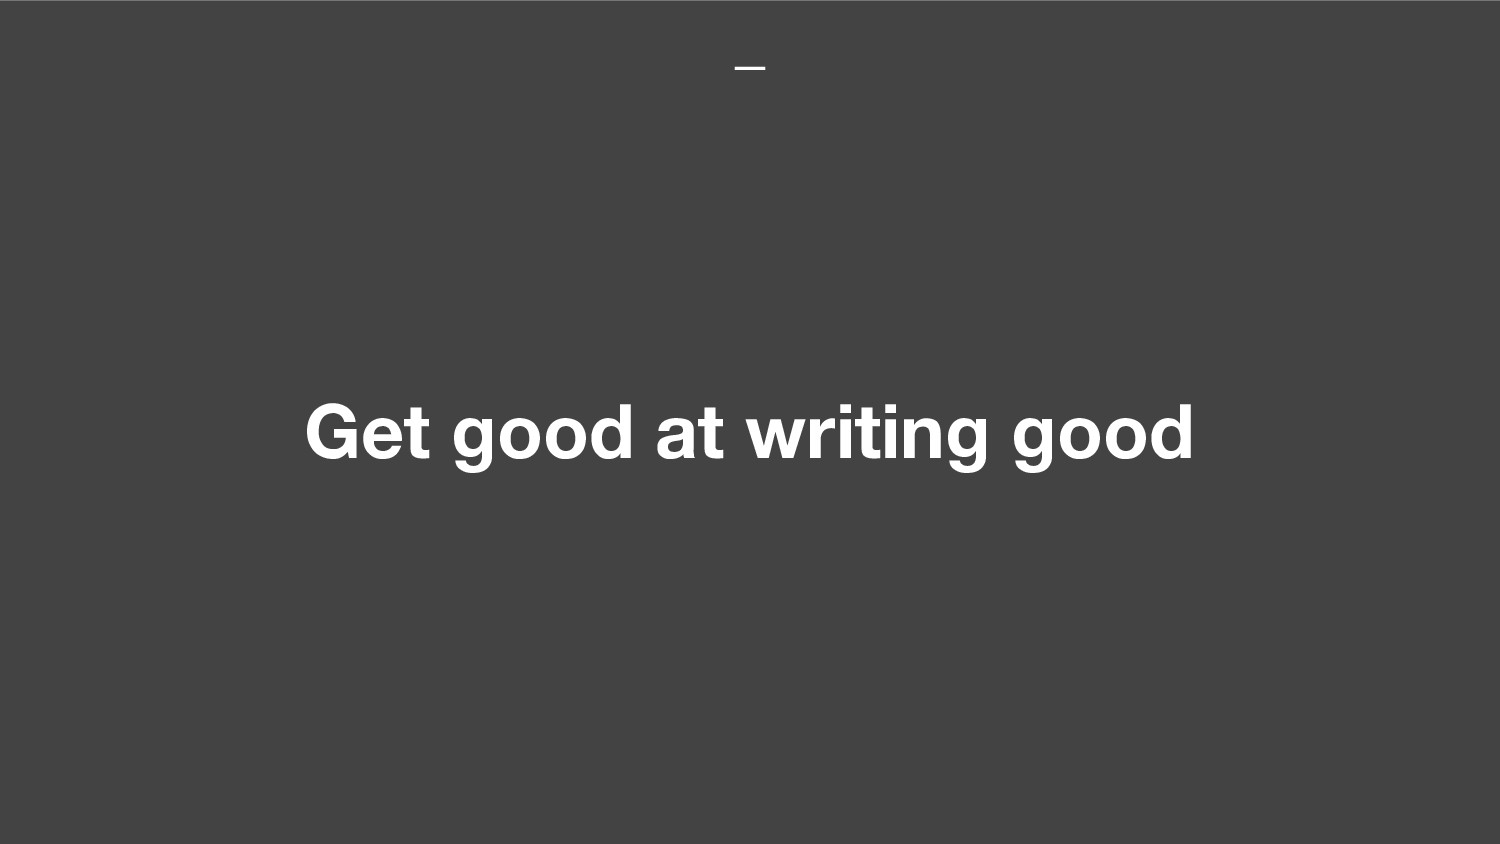 Get good at writing good